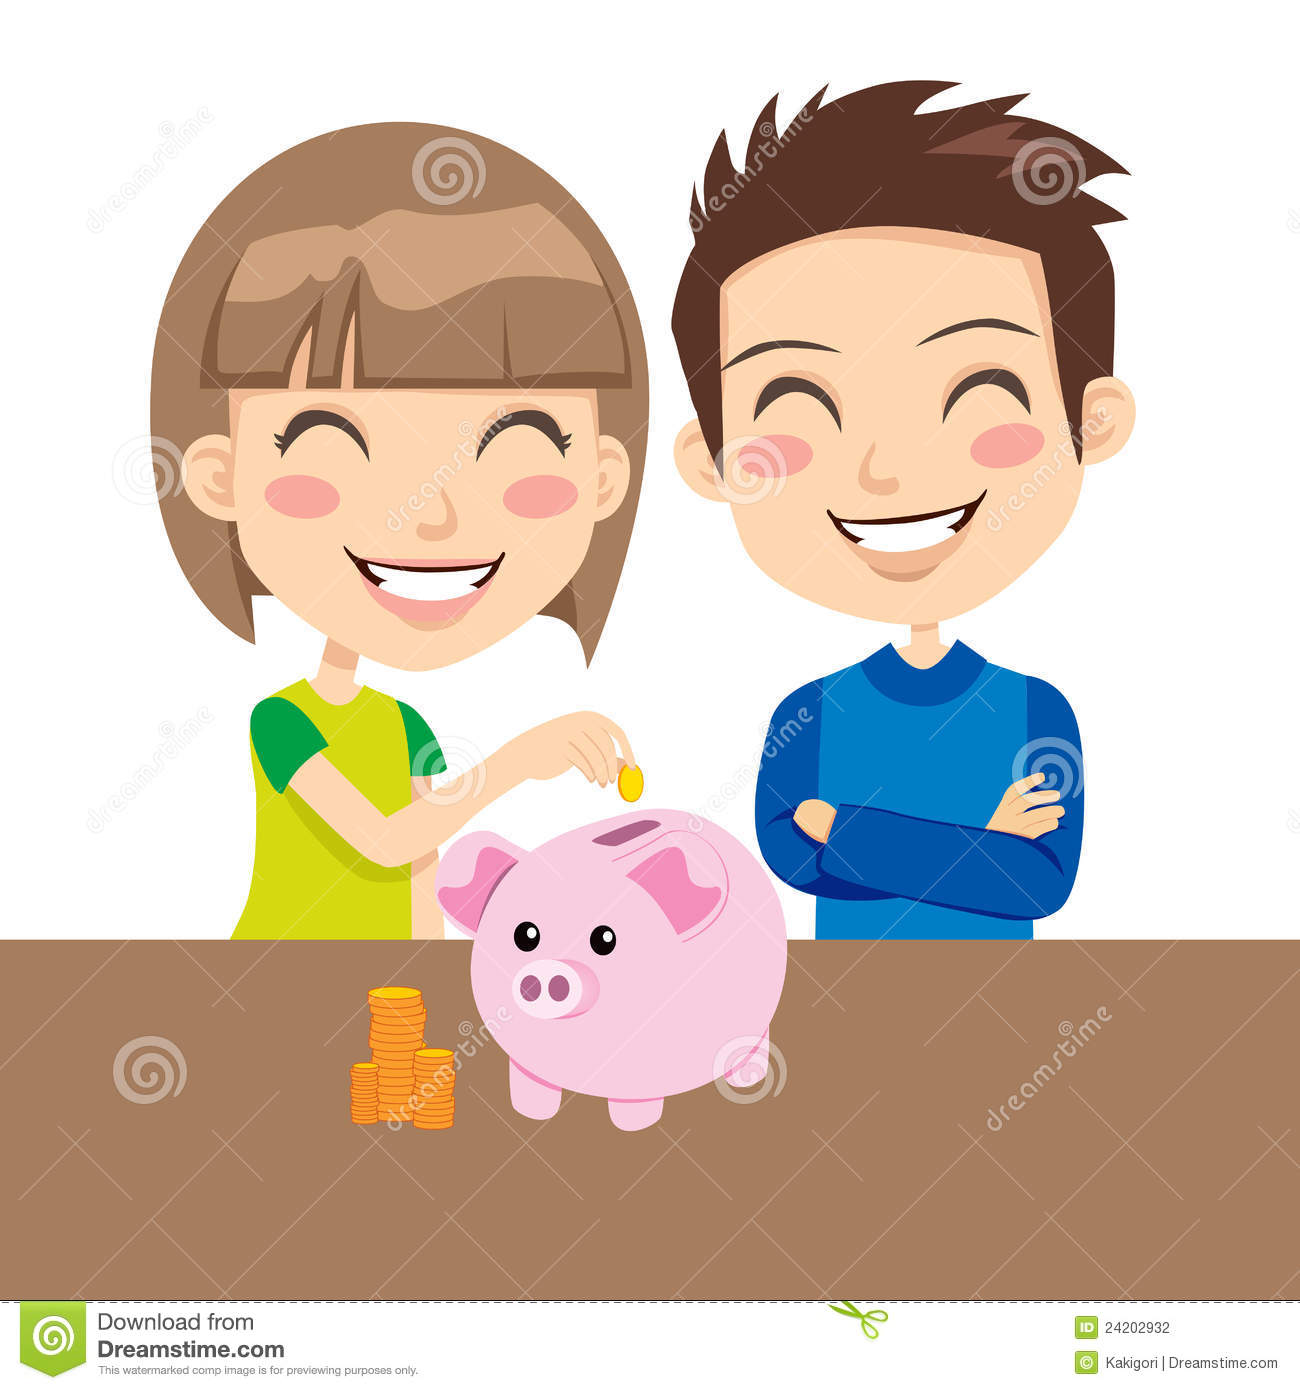 Piggy bank clipart kids saving jpg freeuse Kids Saving Money Stock Photography - Image: 24202932 jpg freeuse